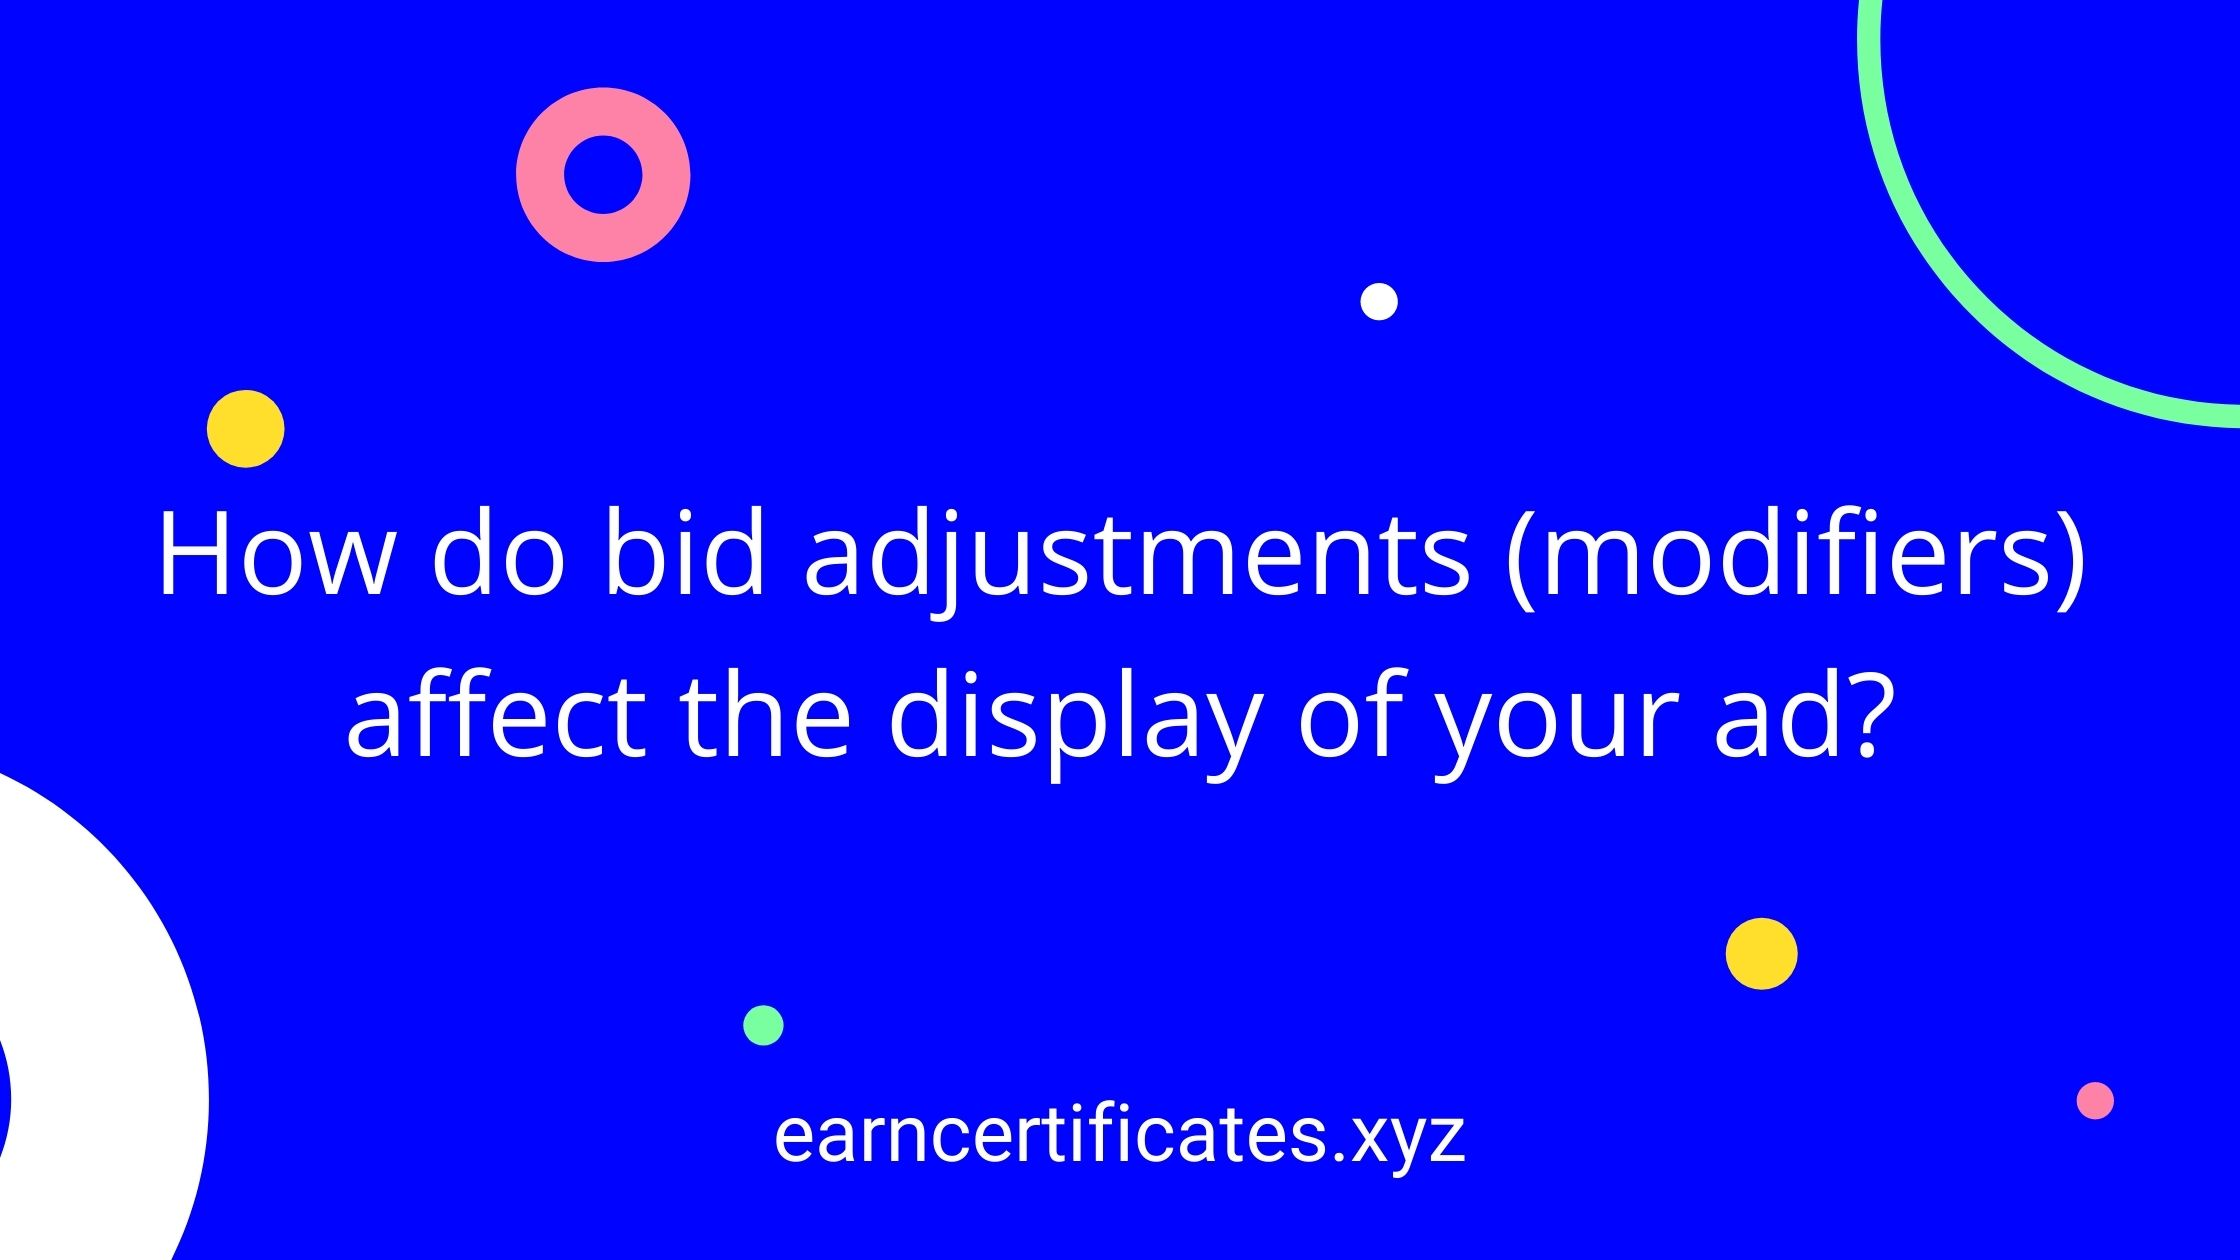 How do bid adjustments (modifiers) affect the display of your ad?